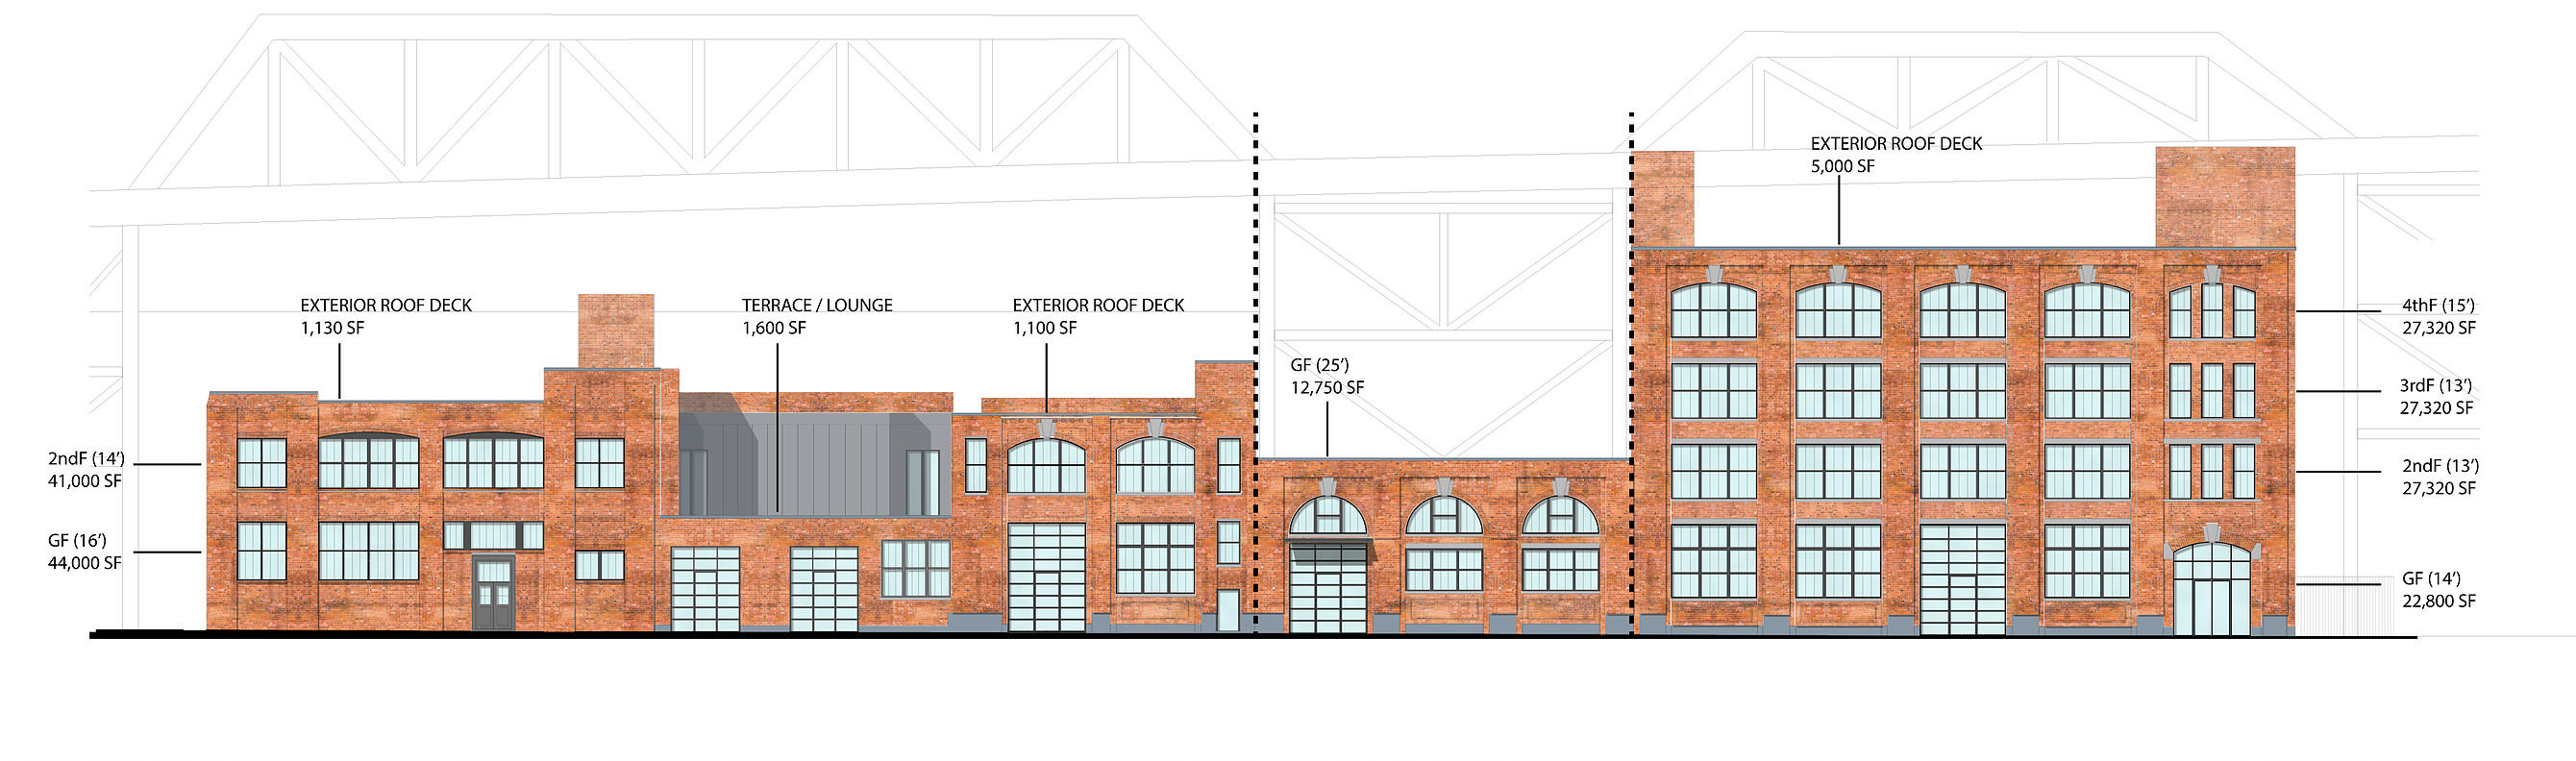 A diagram of the buildings at Roulston House, by Morris Adjmi Architects